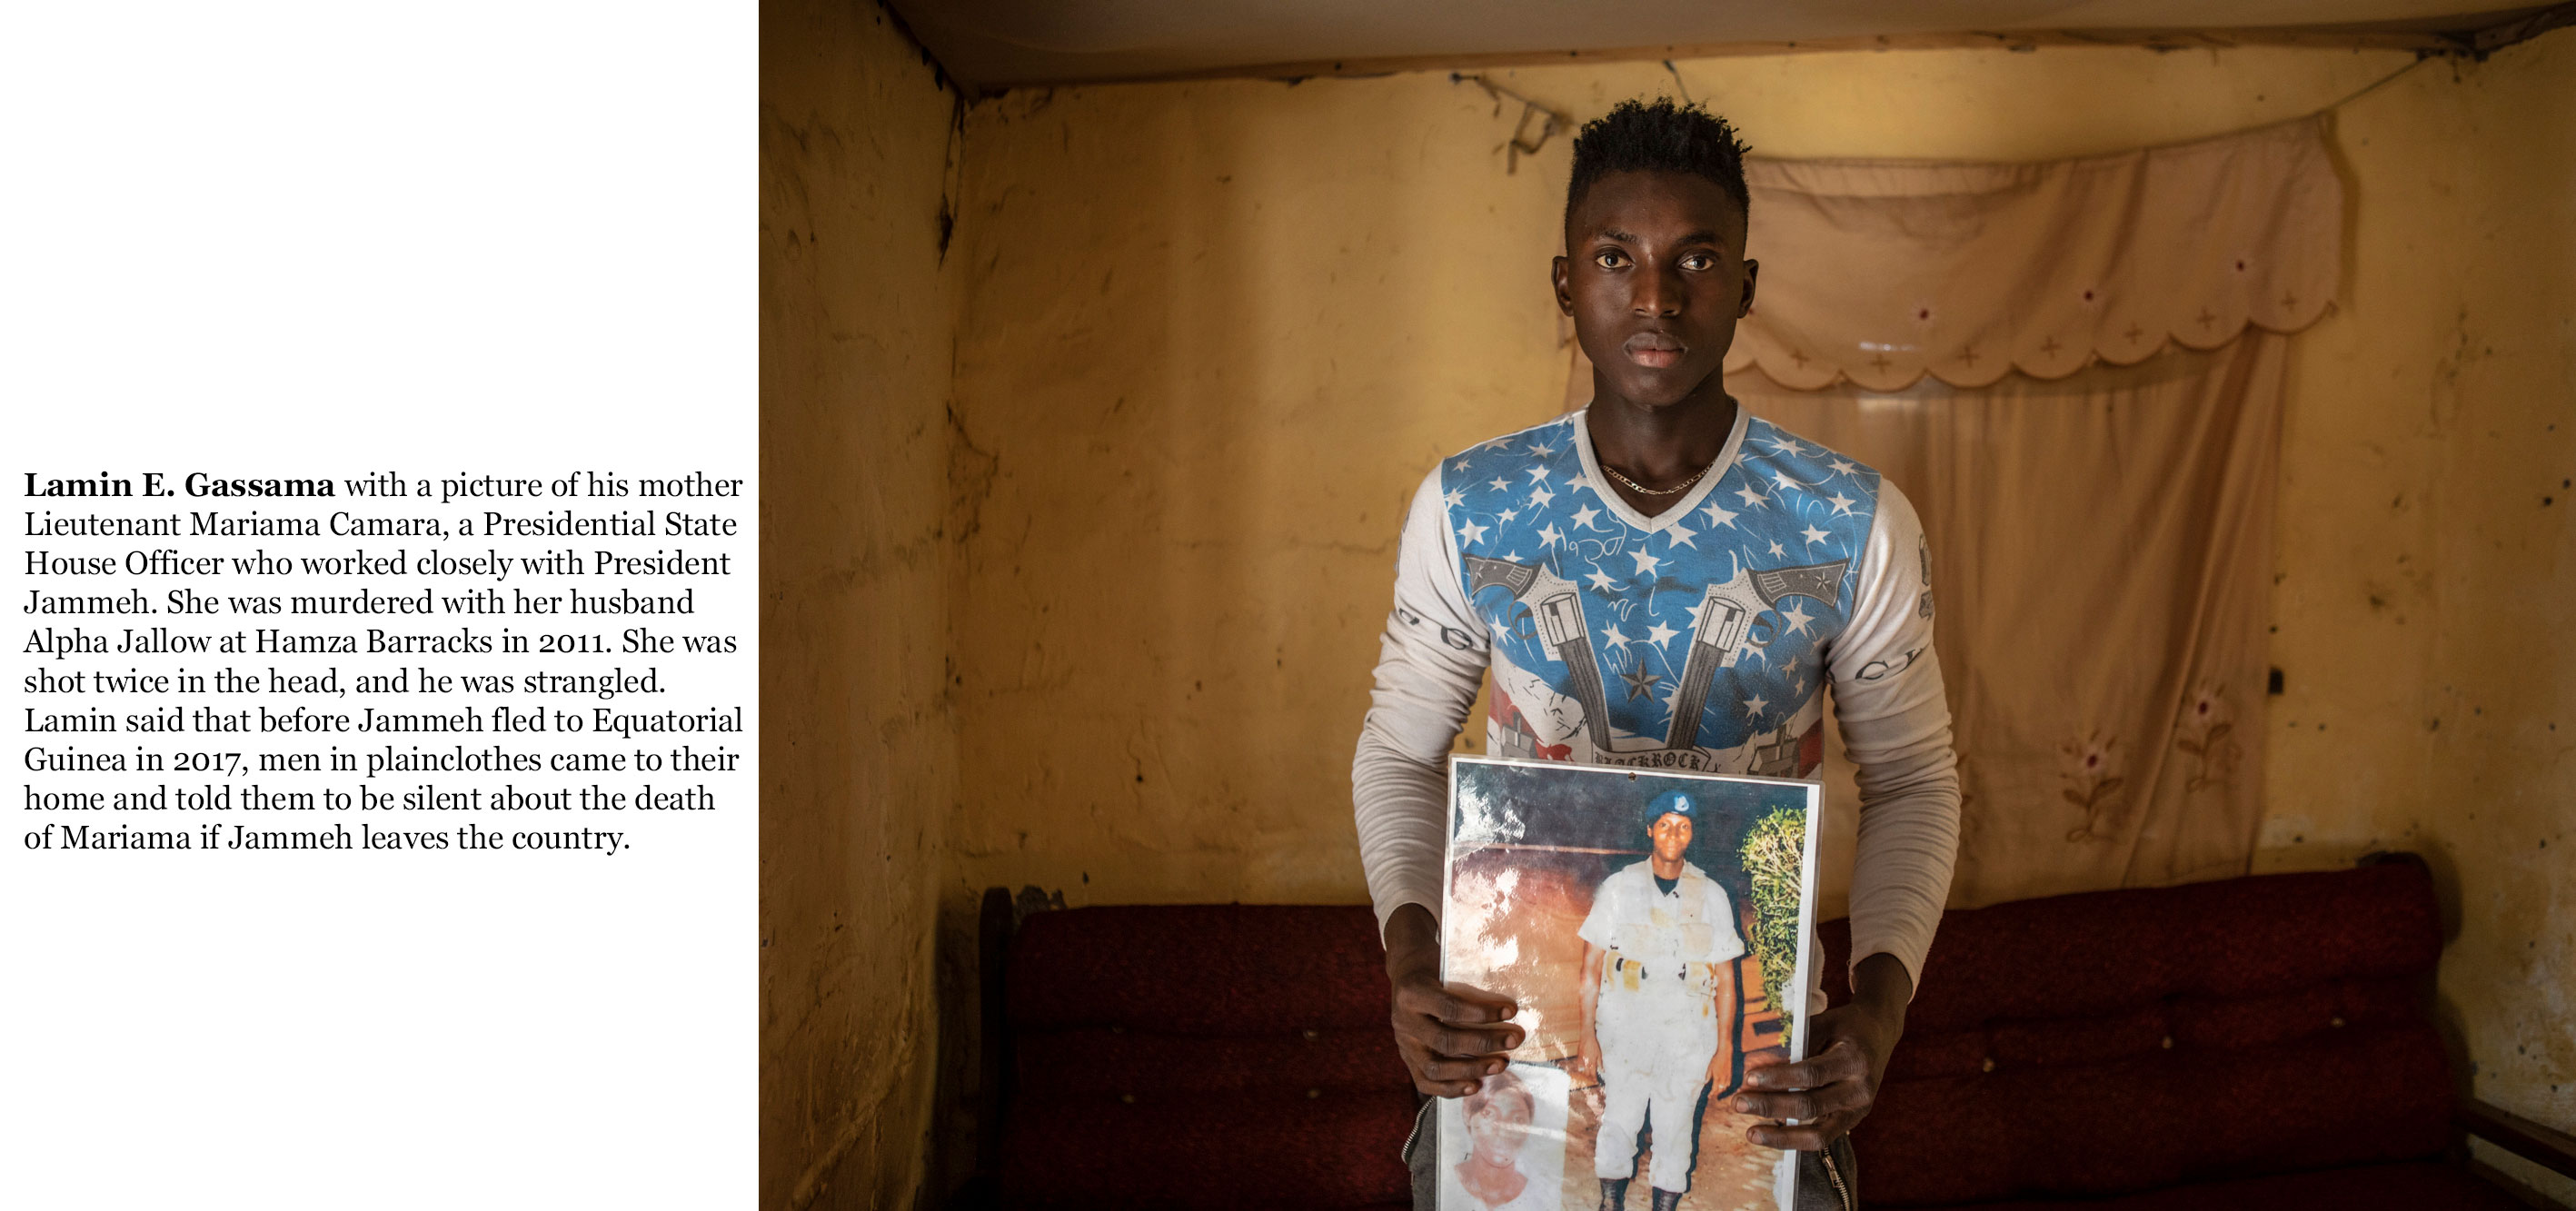 Gambia victims and resisters -Lamin-E-Gassama, son of murdered Gambian soldier, Lieutenant Mariama Camara at Hamza Barracks  _2081_TEXT_web ©Jason Florio